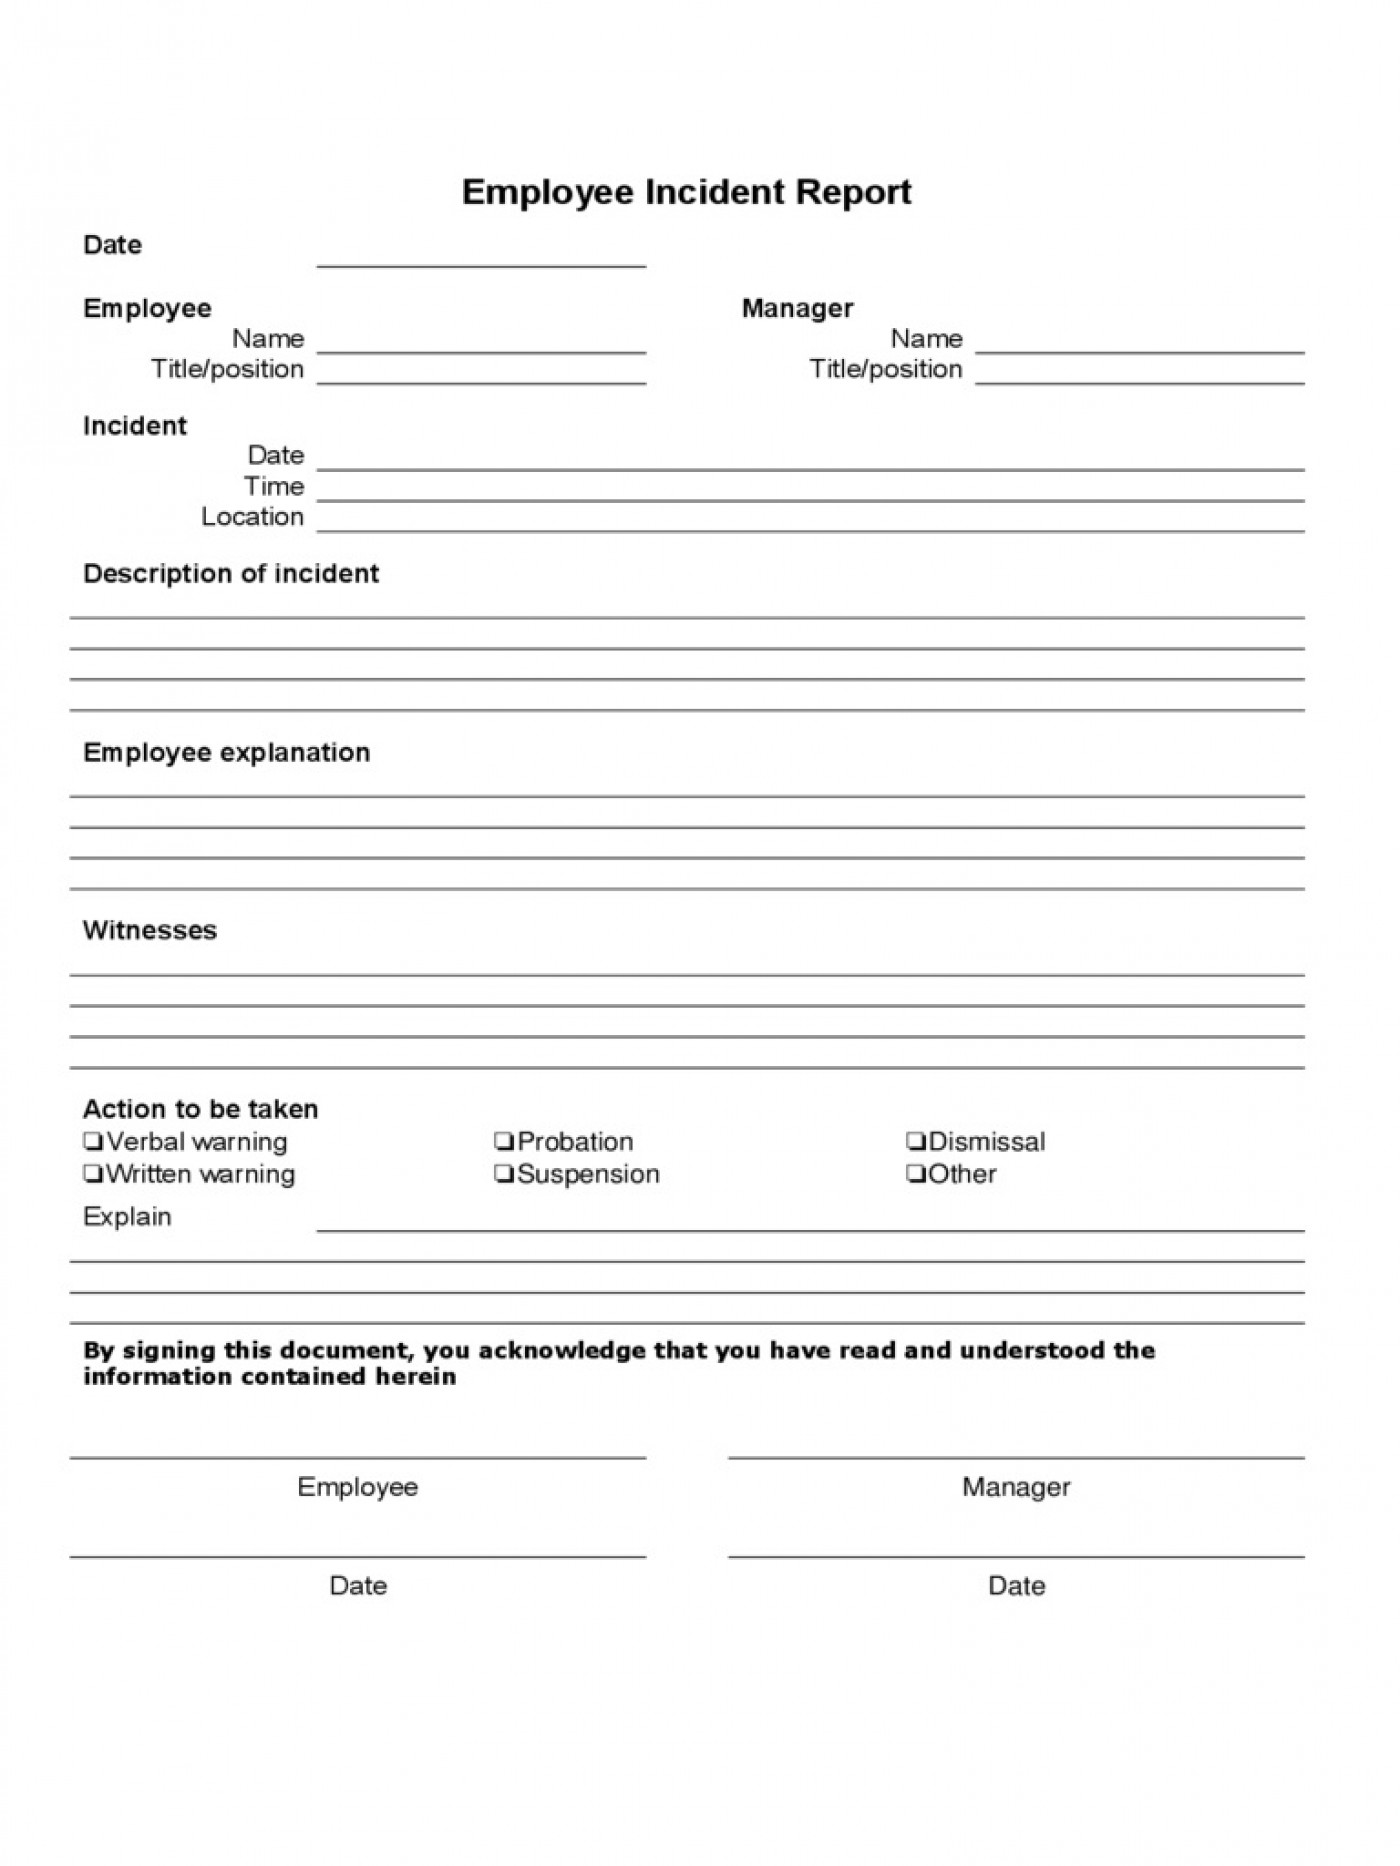 Incident Report Form Template Word Employee  Downloadable Free1400